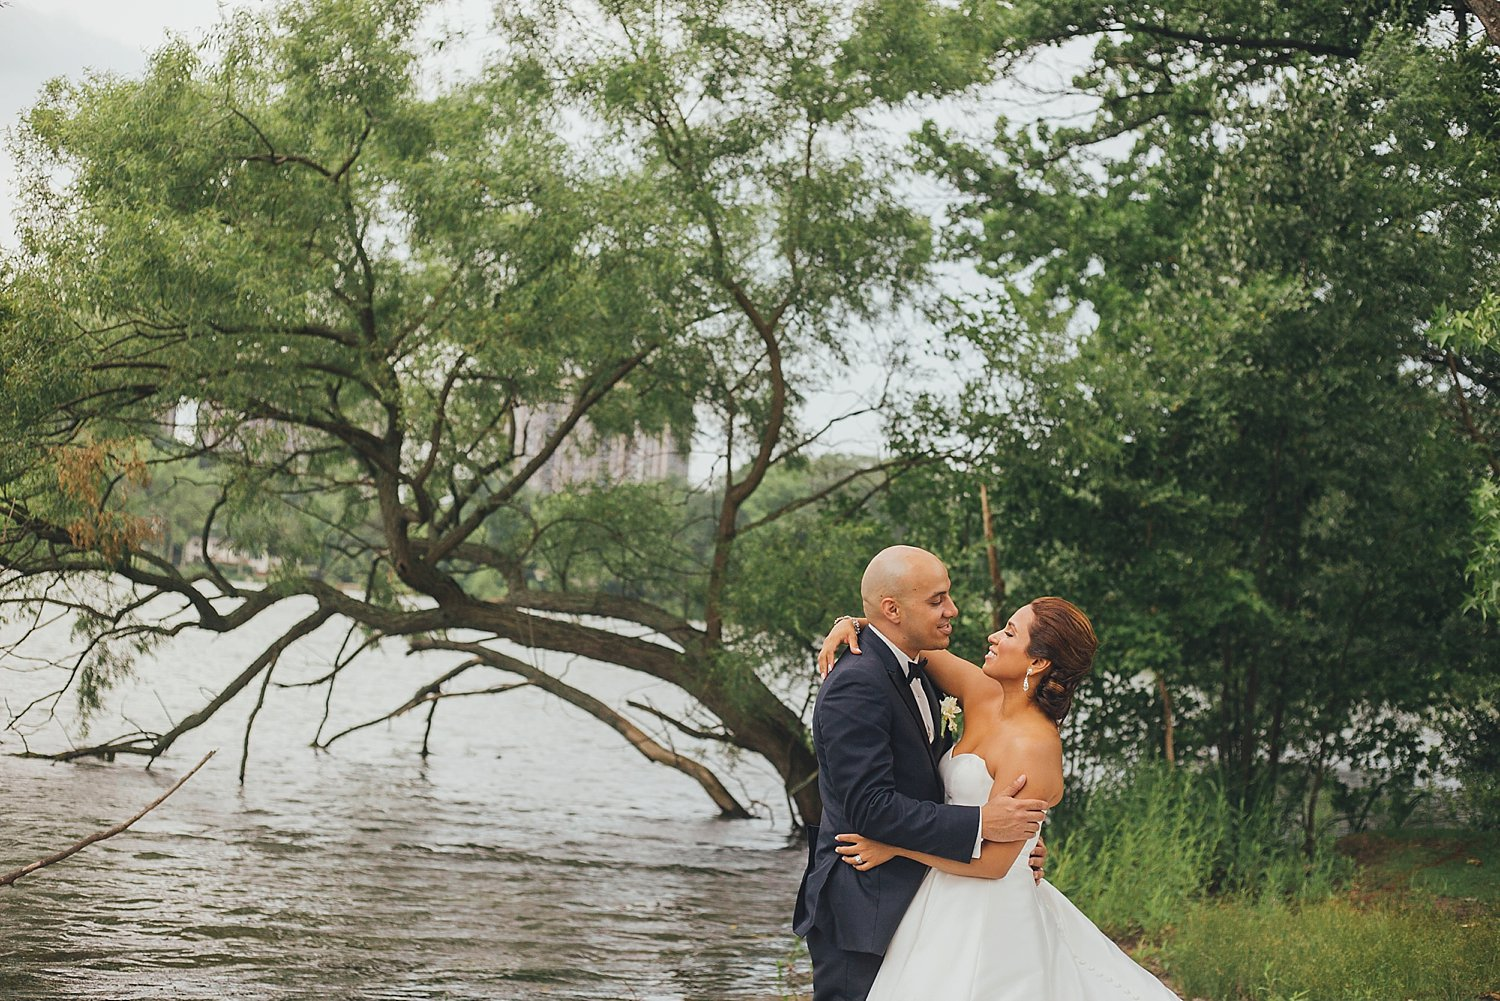 nyc-wedding-photography-nj-tri-state-cinematography-intothestory-by-moo-jae_0302.jpg